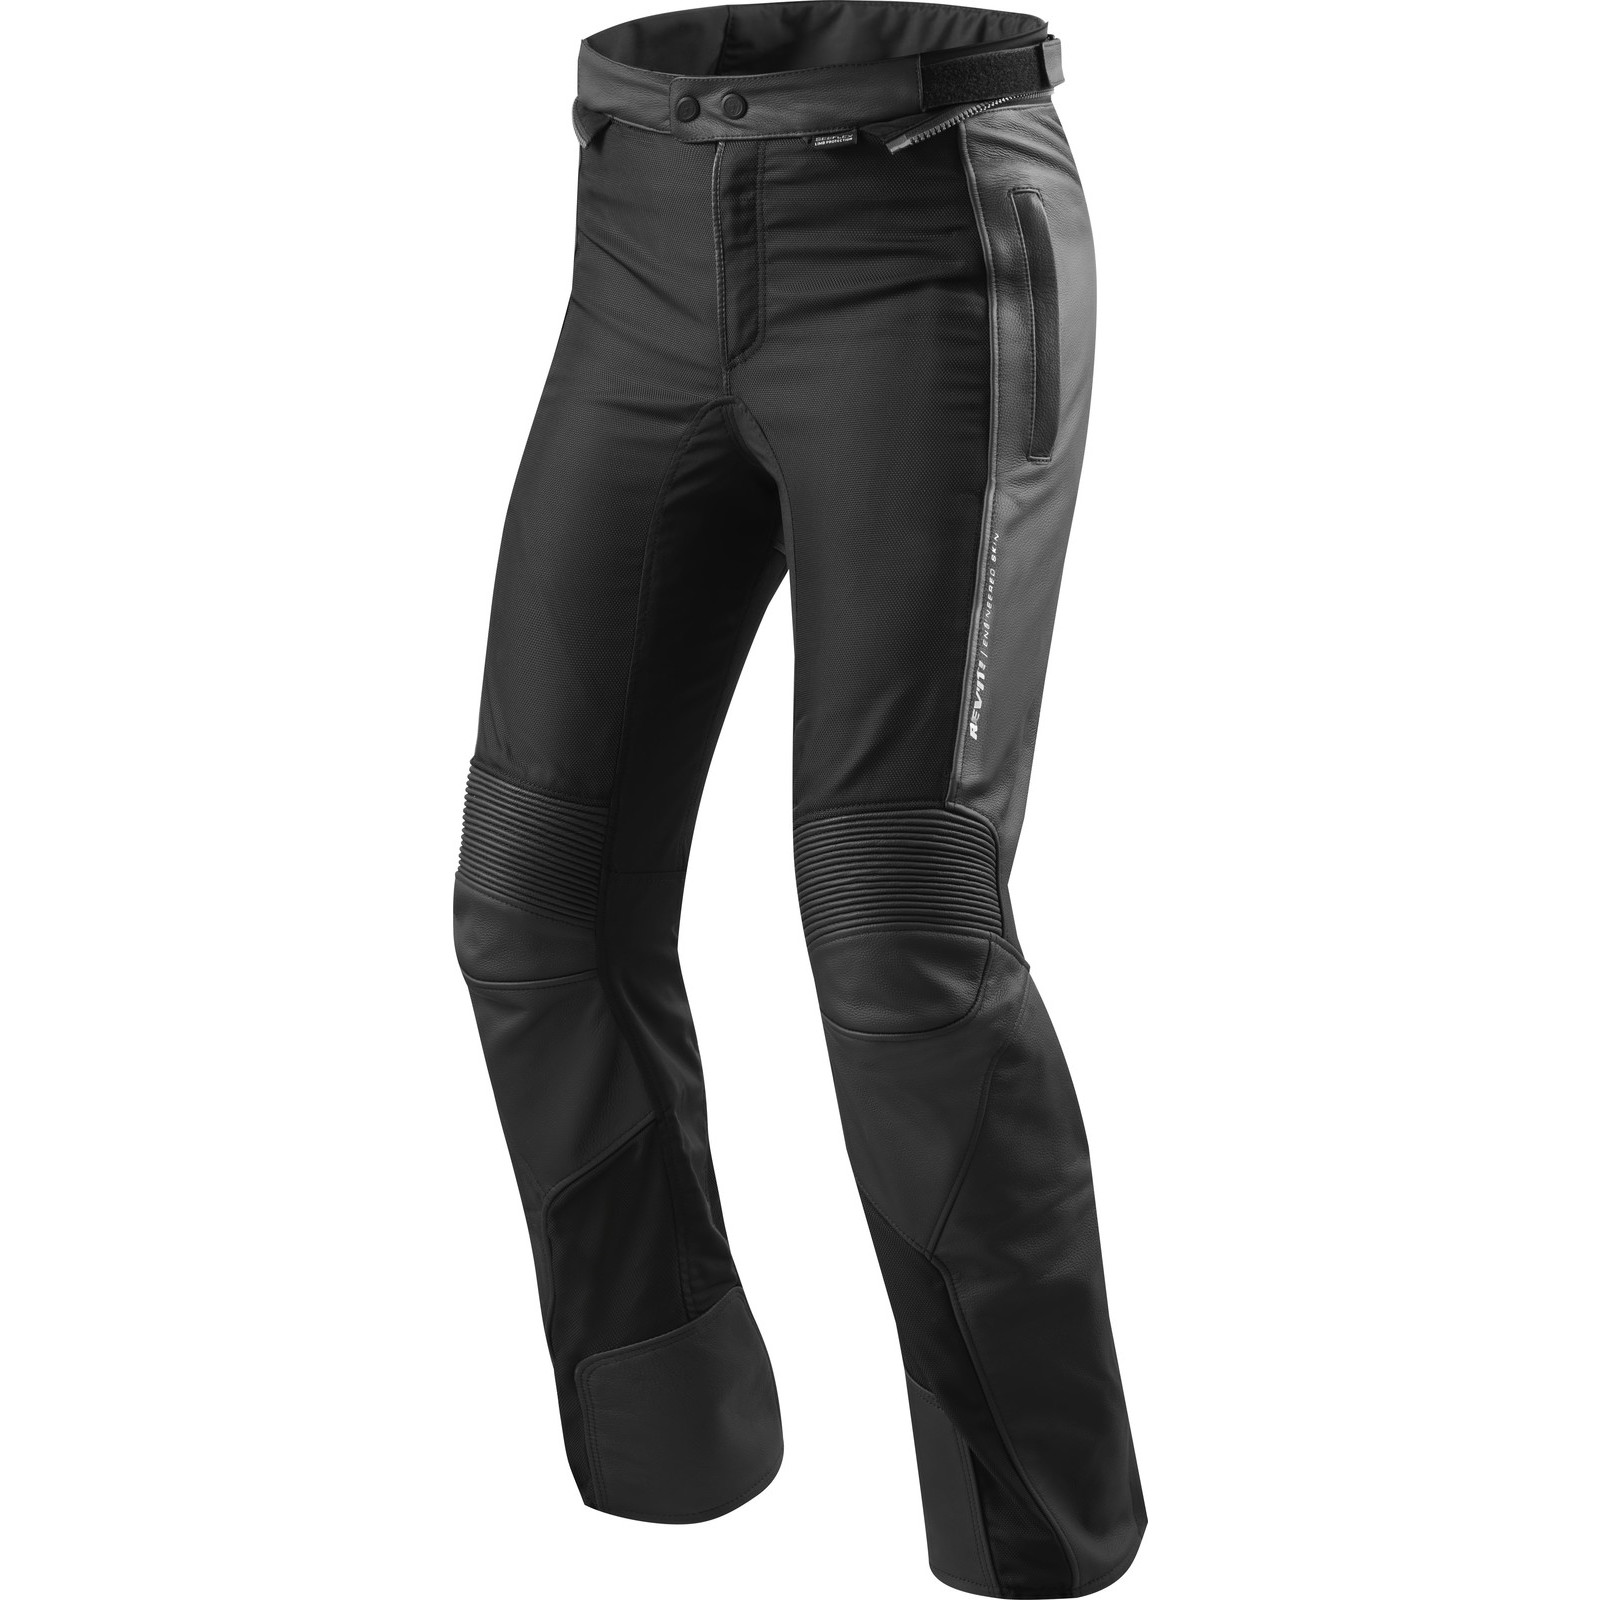 Rev it ignition 3 leather motorcycle trousers mens waterproof image is loading rev it ignition 3 leather motorcycle trousers mens publicscrutiny Gallery